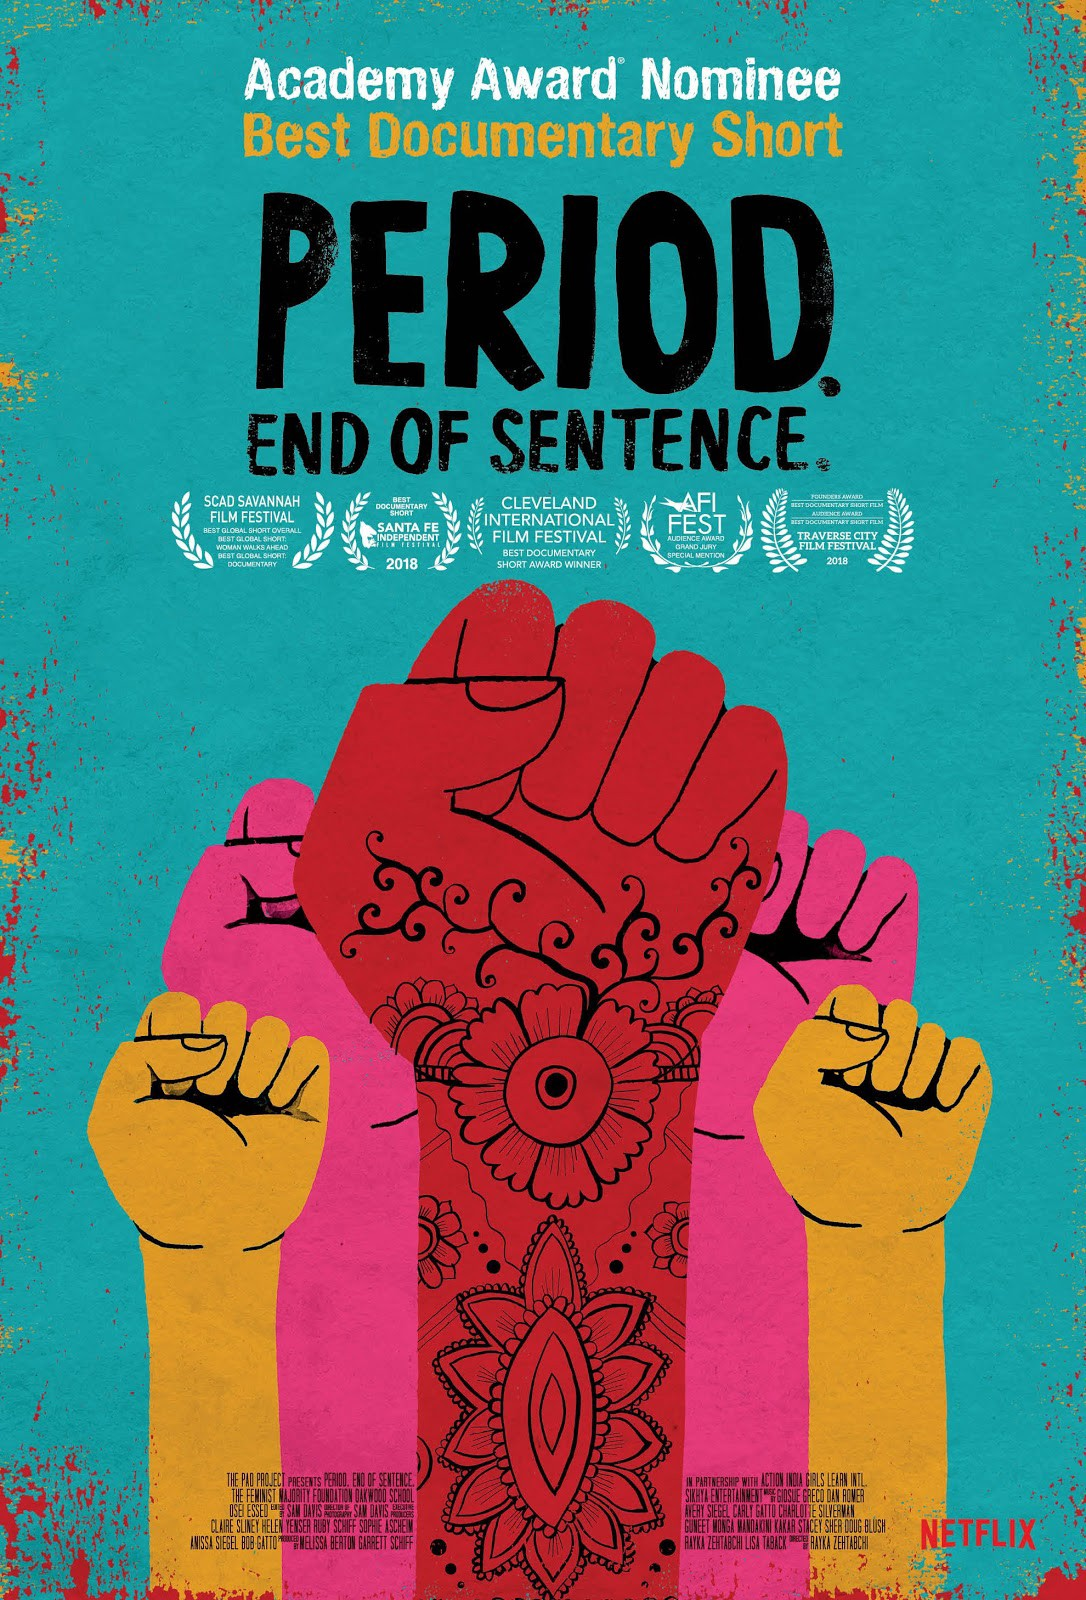 Period. End of Sentence. - Isha B - Medium